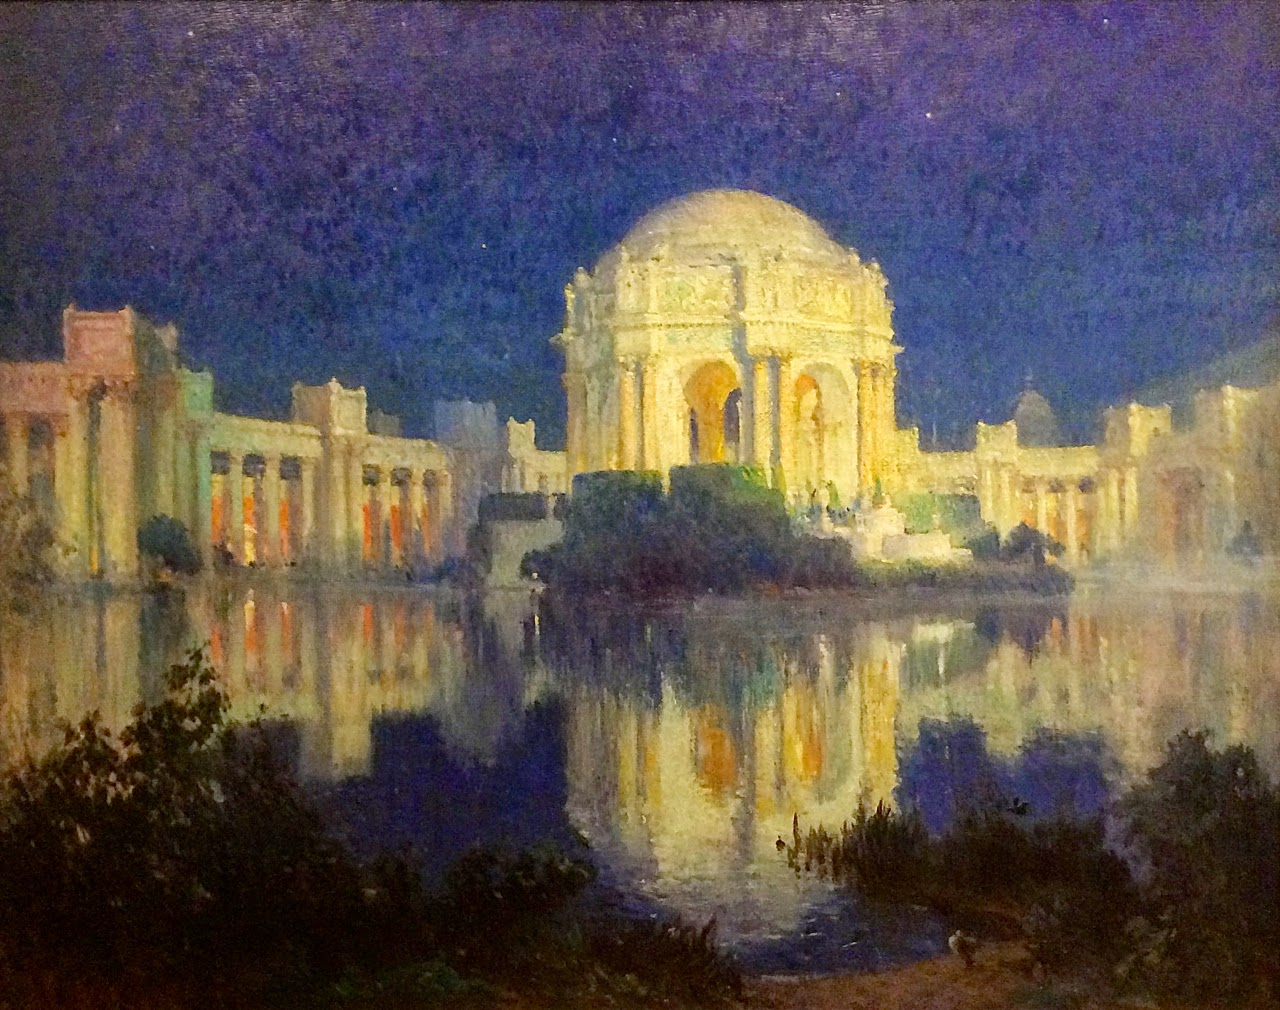 filecolin campbell cooper palace of fine arts san